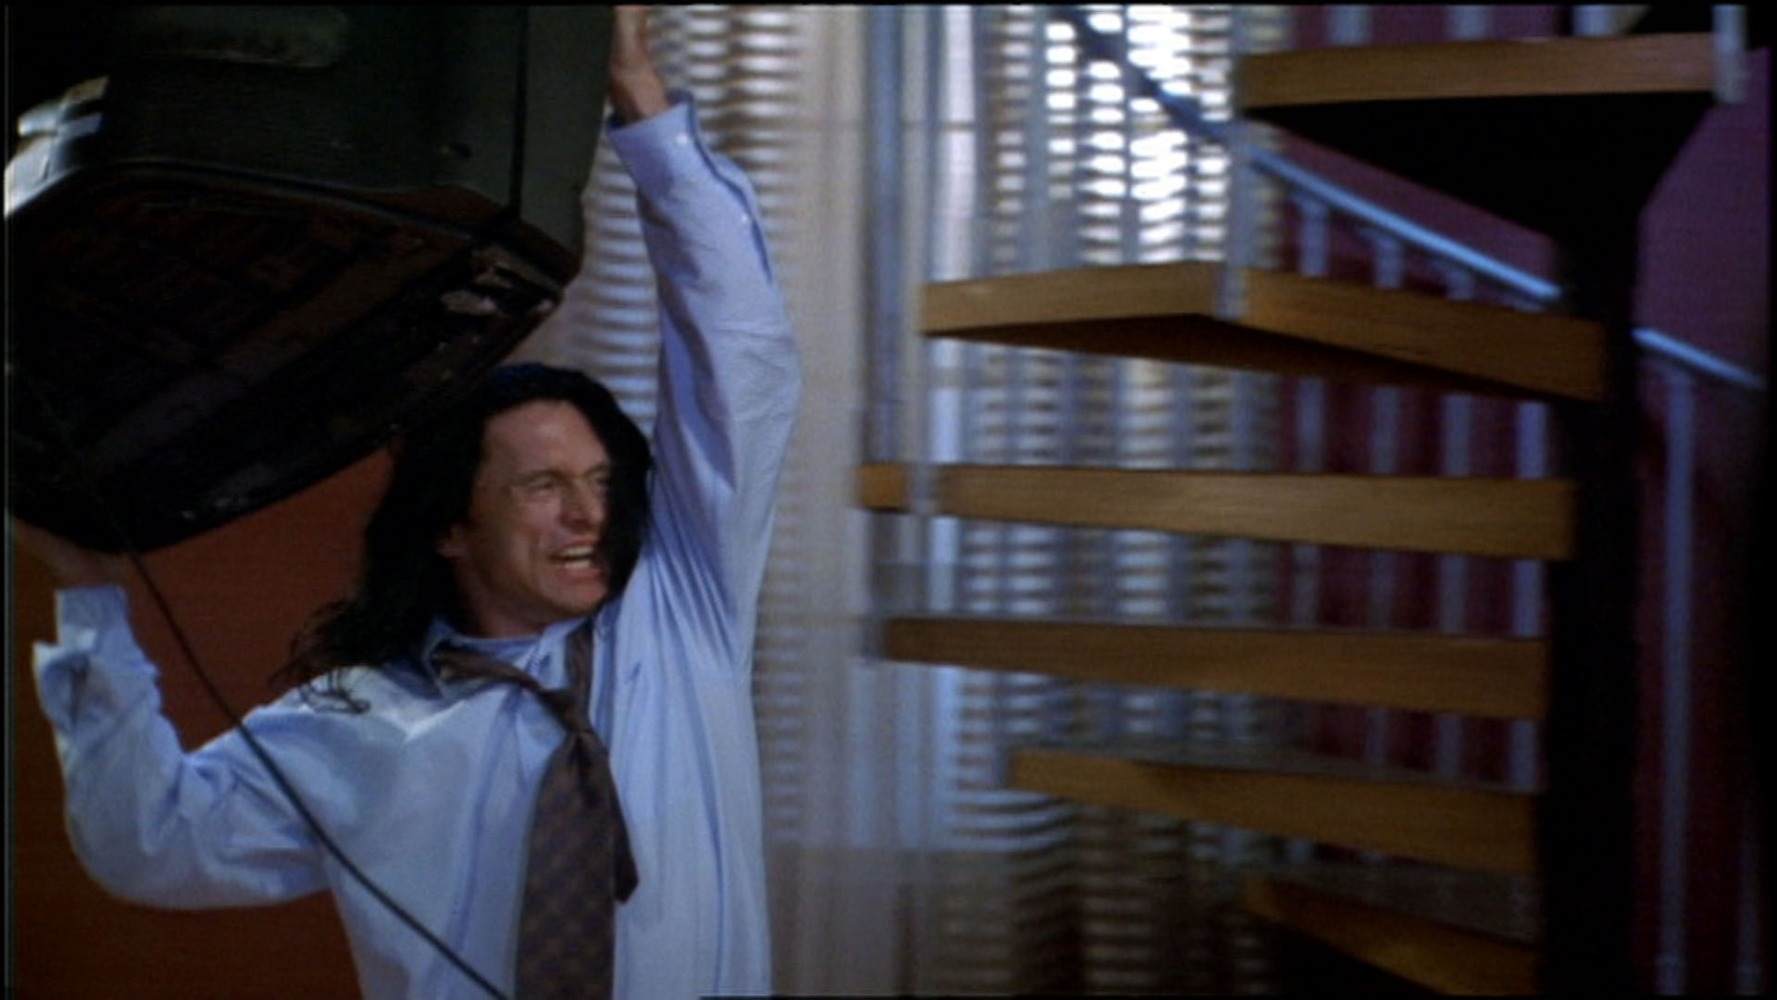 A scene from Tommy Wiseau's The Room